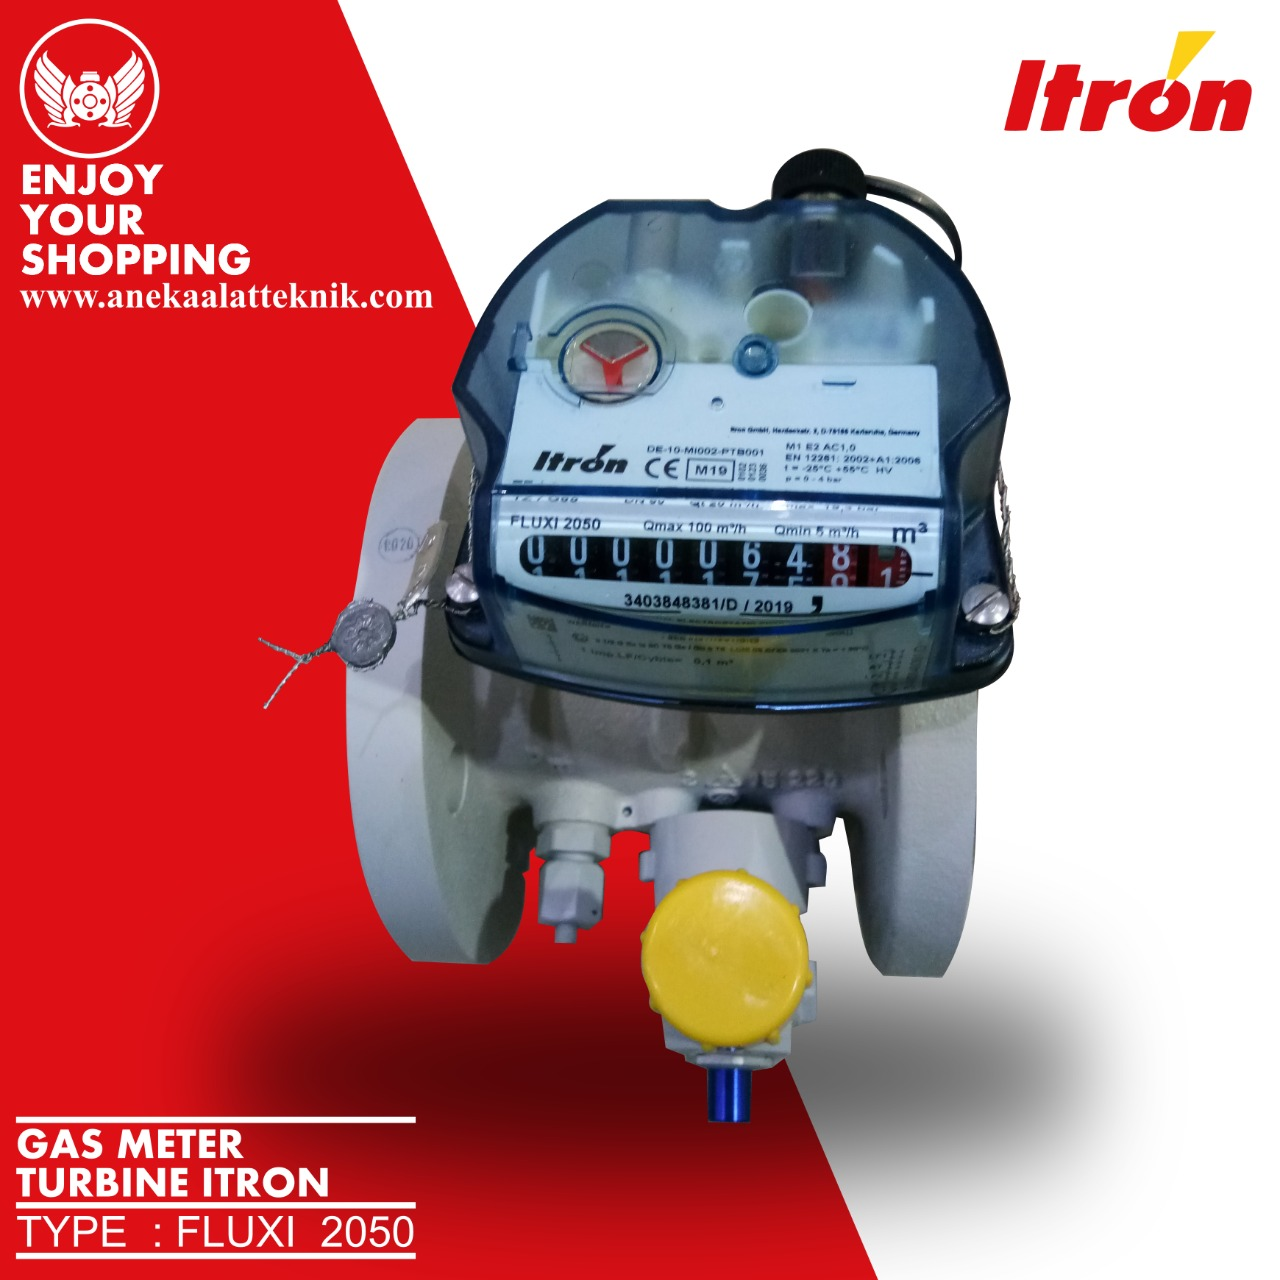 Itron Delta G25 Rotary Meter